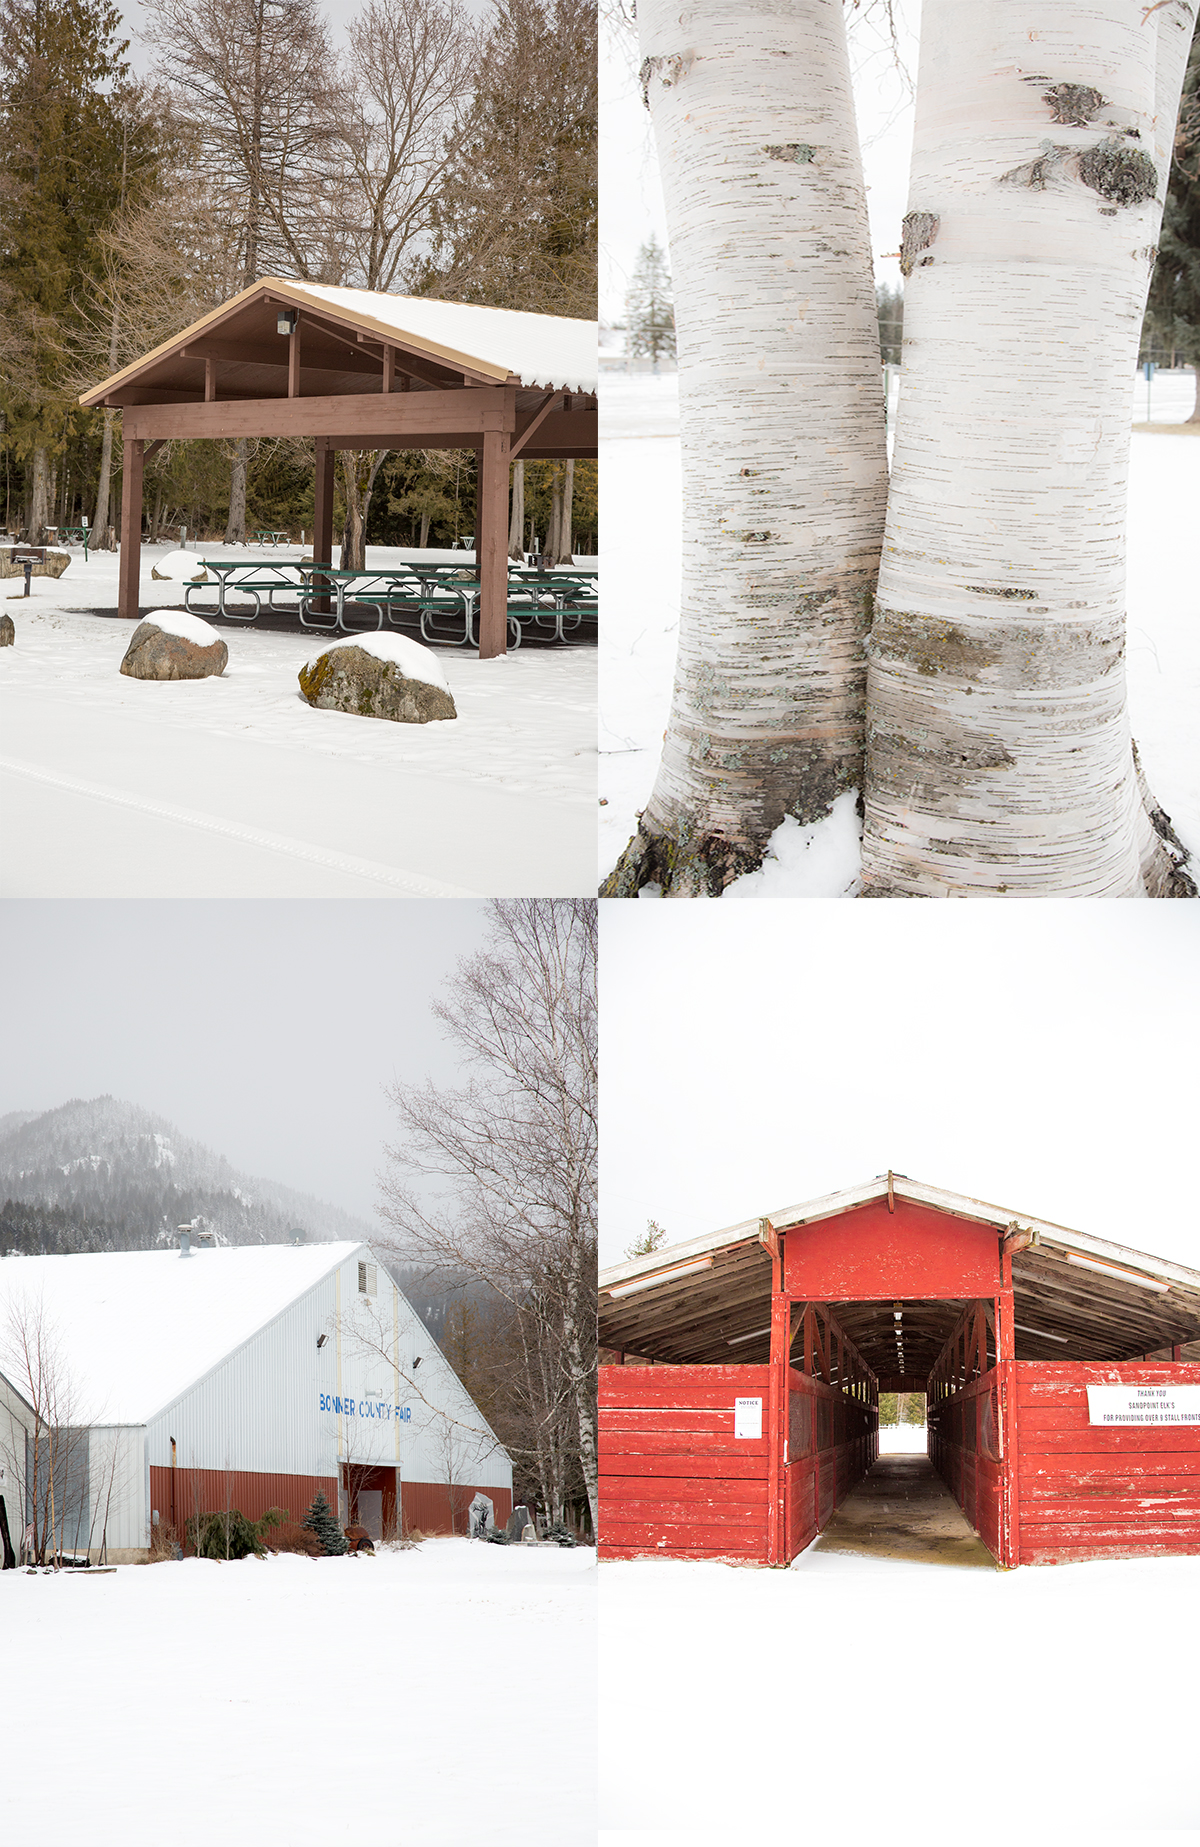 Exploring the Bonner County Fairgrounds in Sandpoint, ID